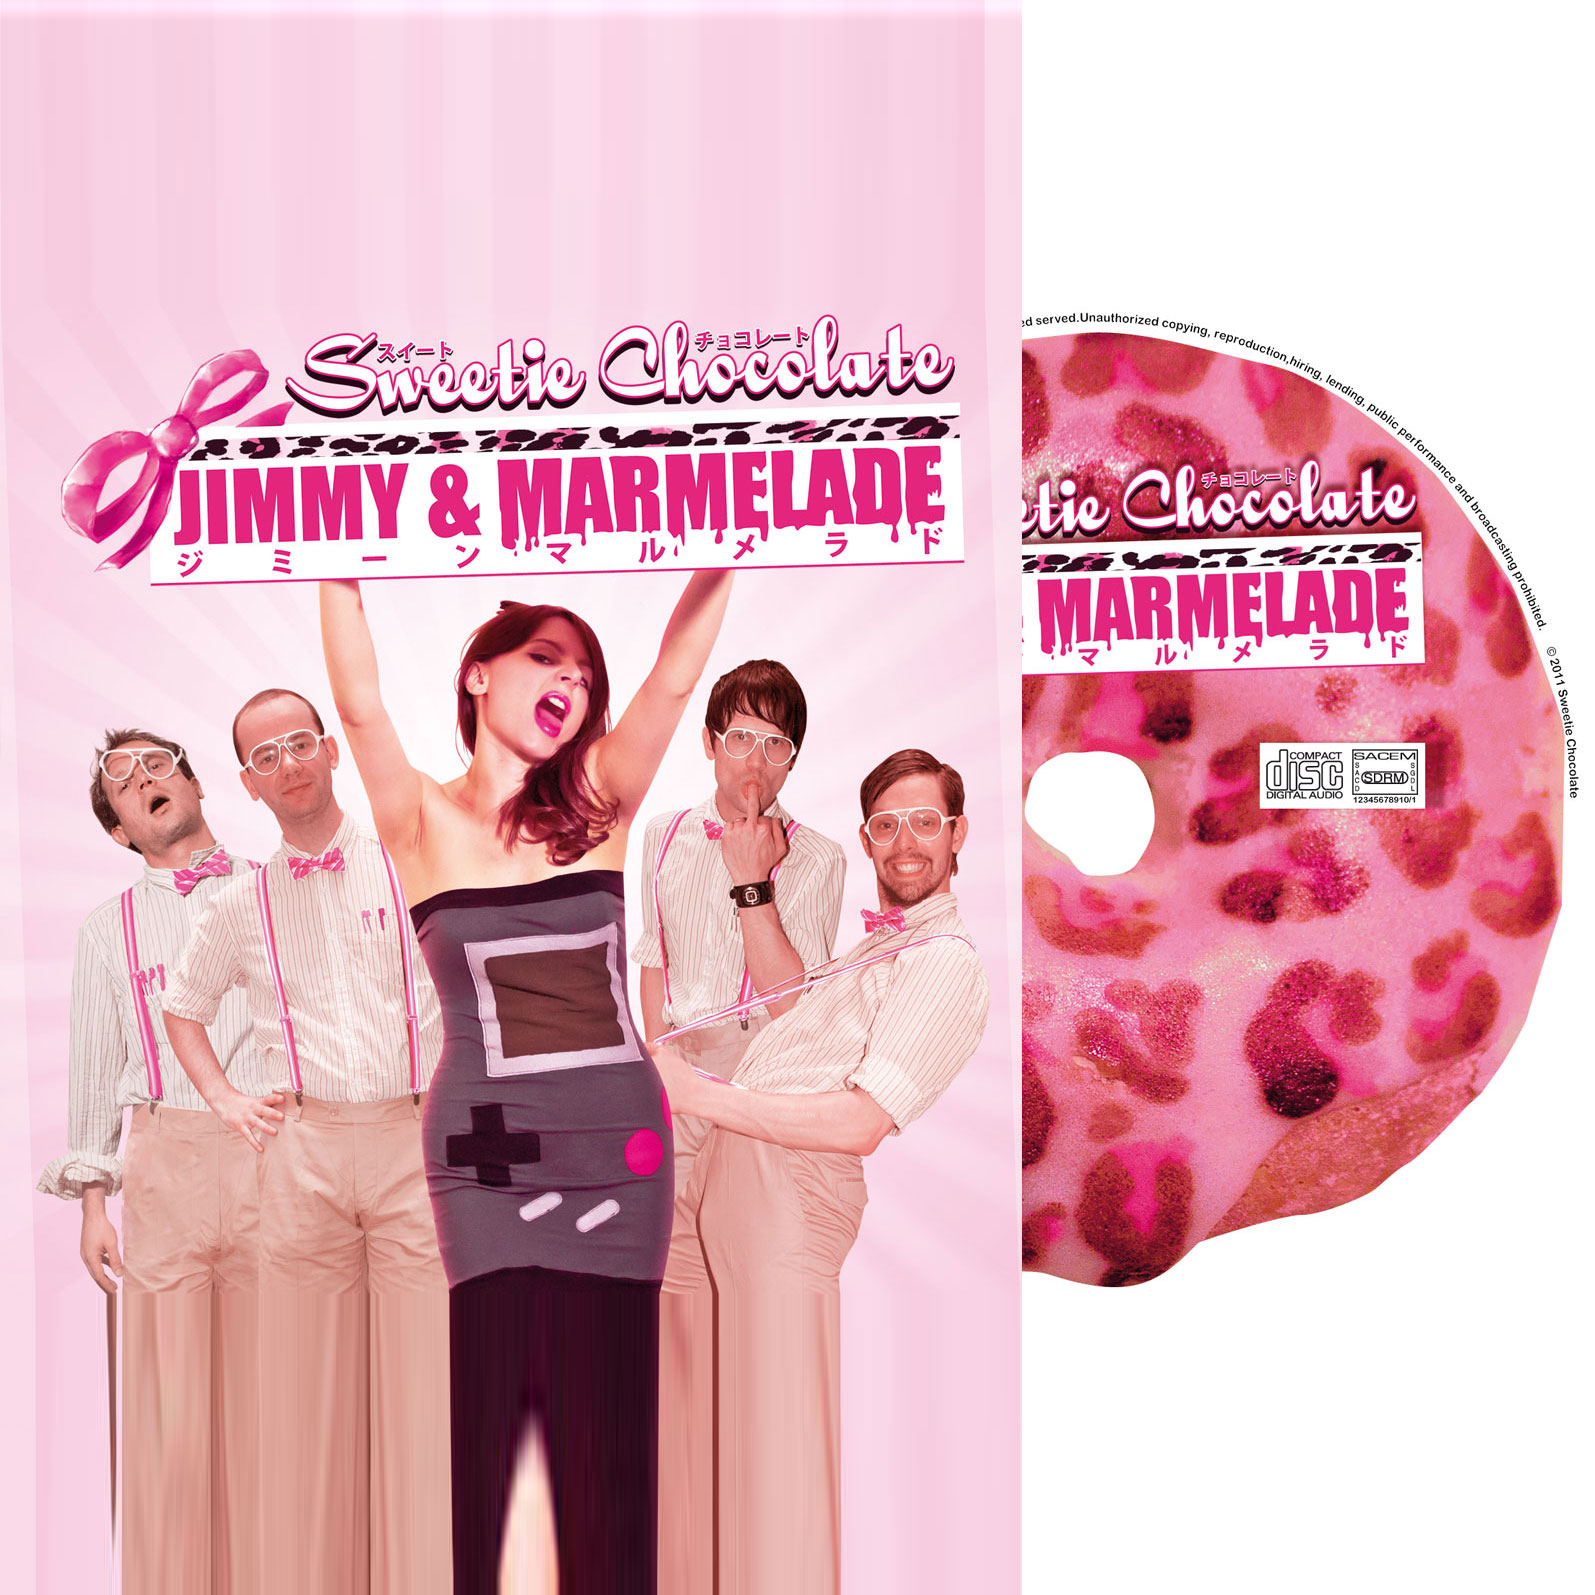 natashatagada sweetie chocolate jimmy and marmelade